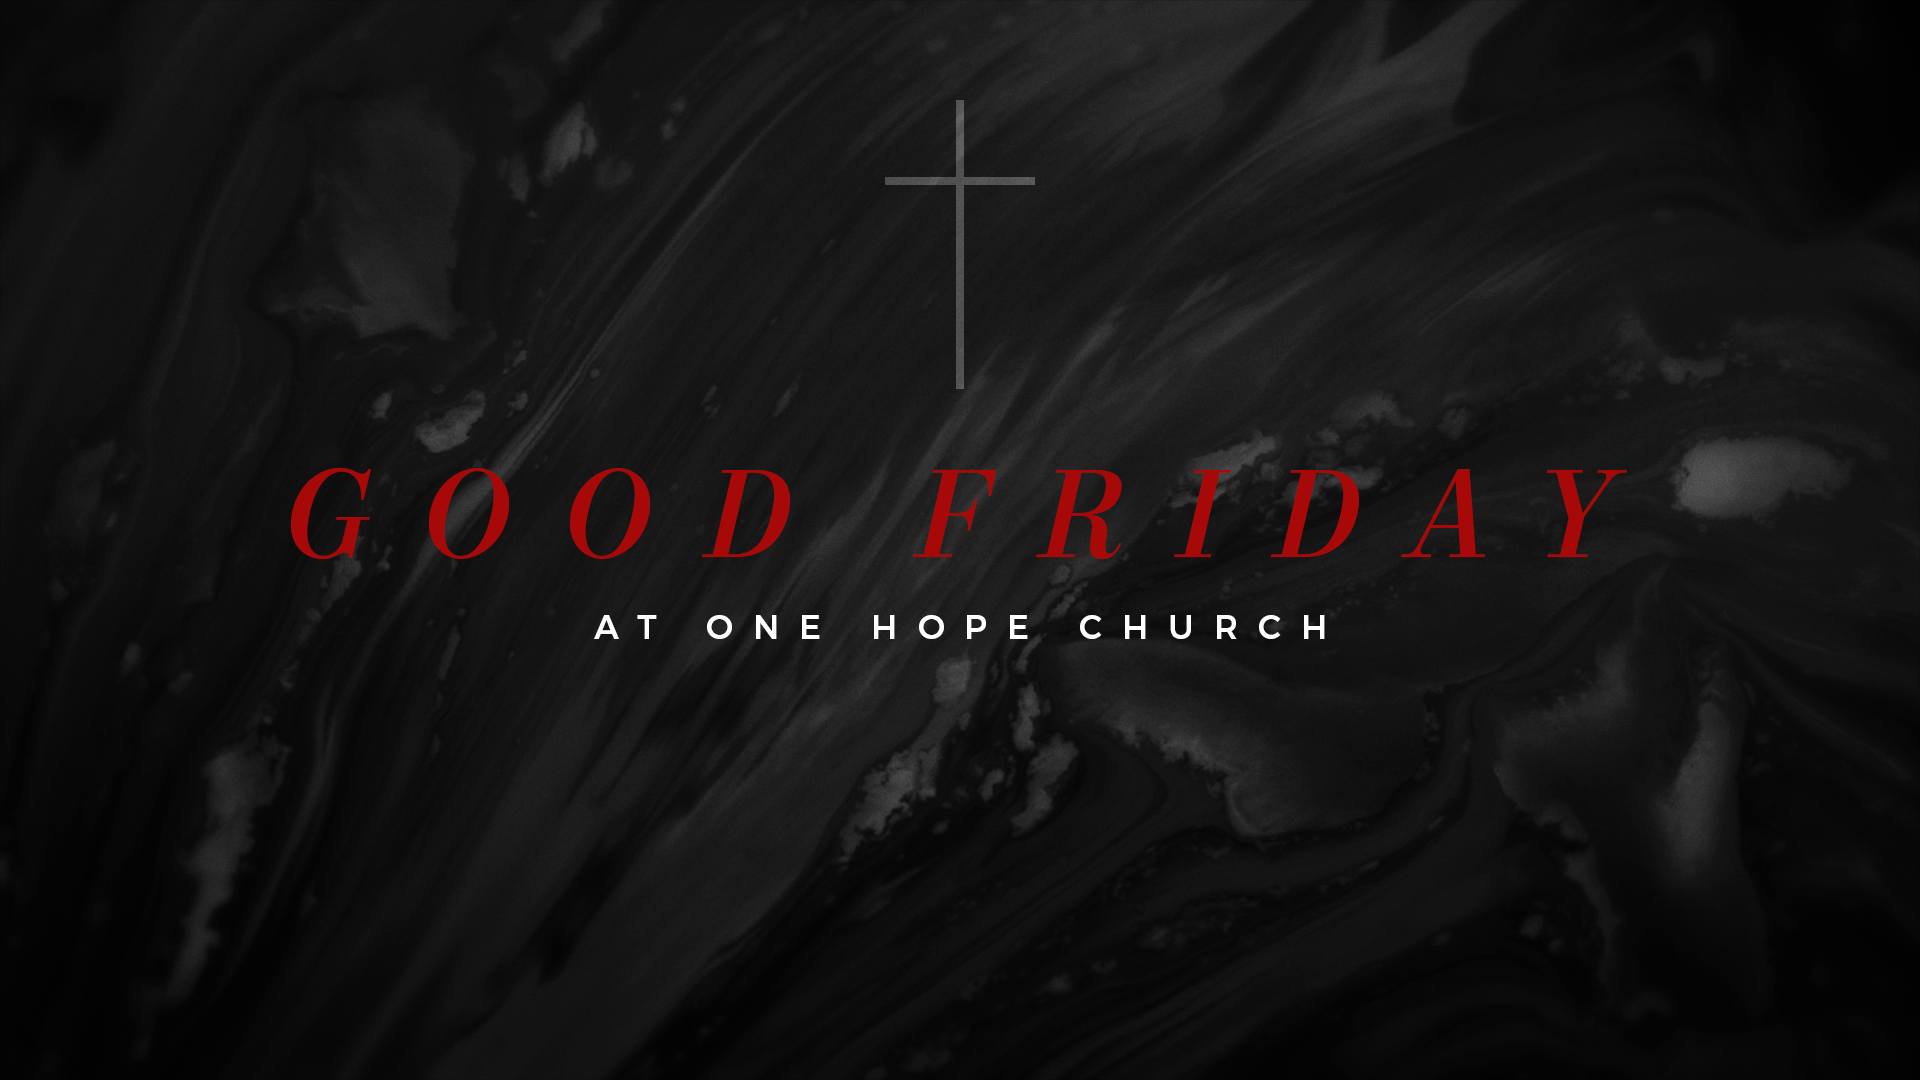 Good Friday at One Hope Church